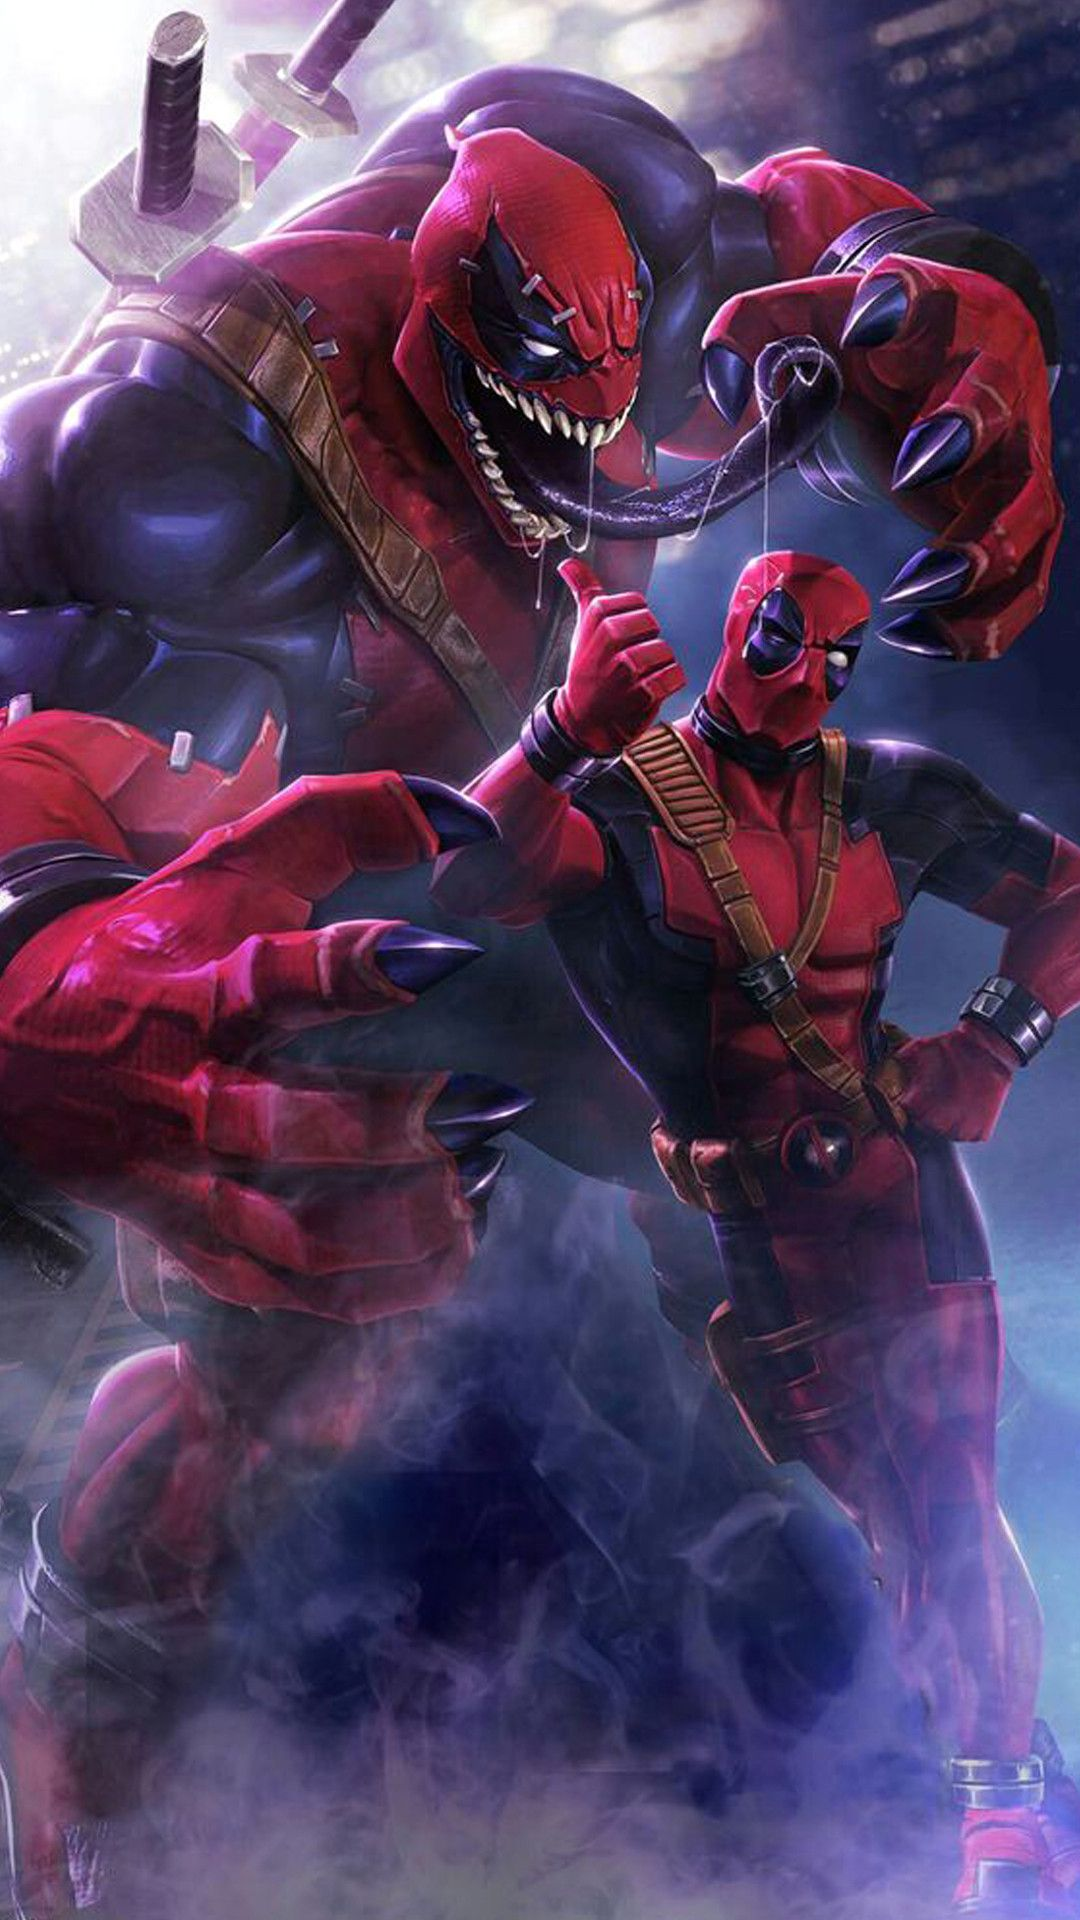 Download Luxury Venom Deadpool Hd Wallpaper For Mobile Top Free Awesome Backgrounds In 2020 Deadpool Artwork Deadpool Wallpaper Superhero Wallpaper